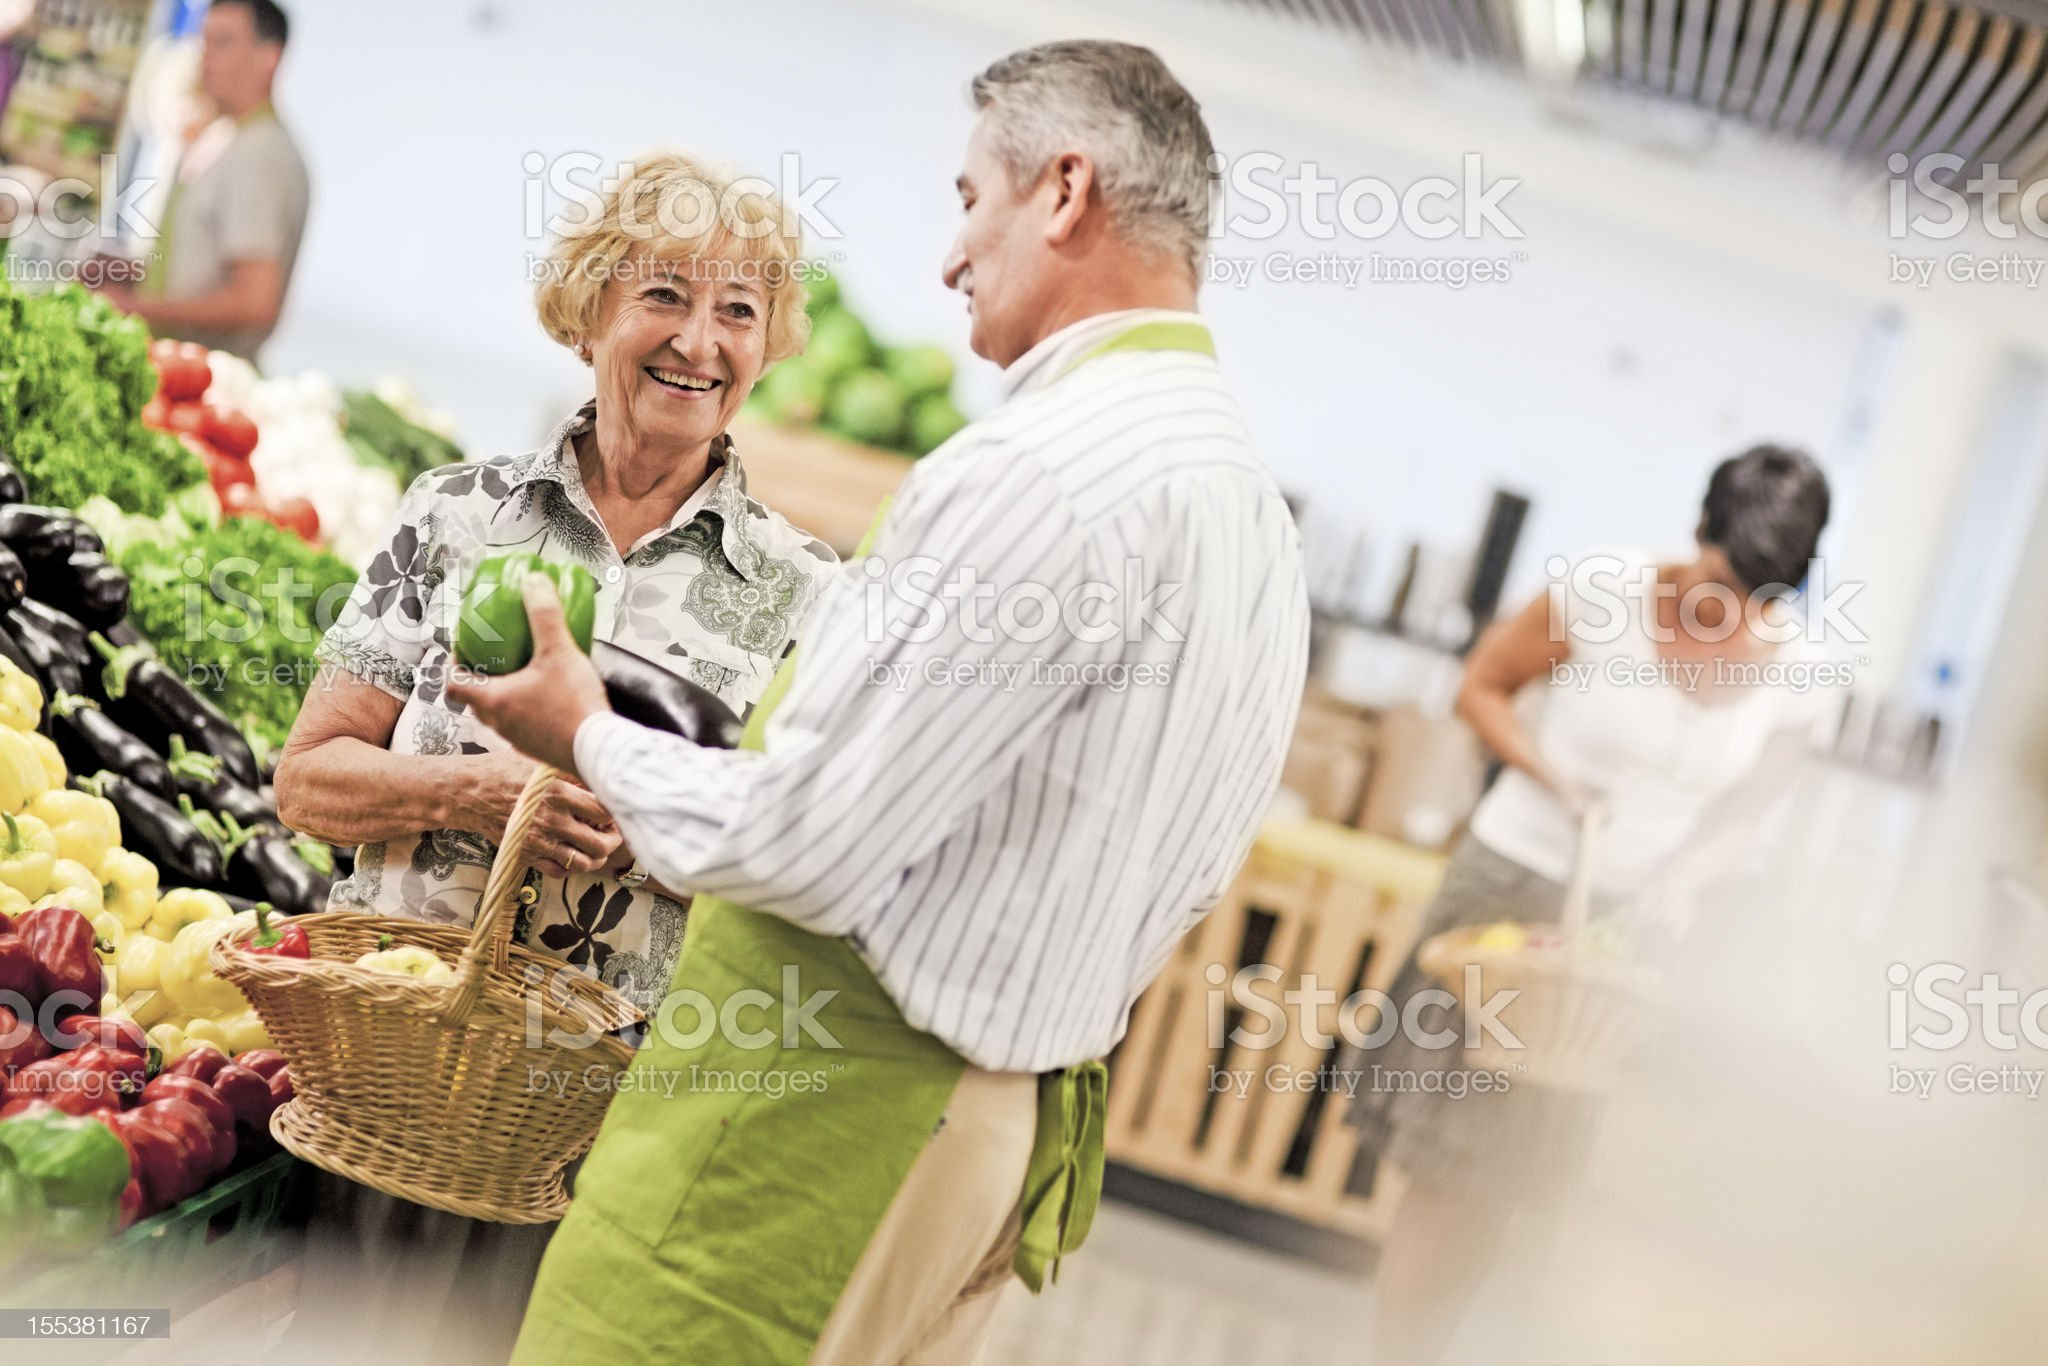 People Shopping In Produce Store royalty-free stock photo